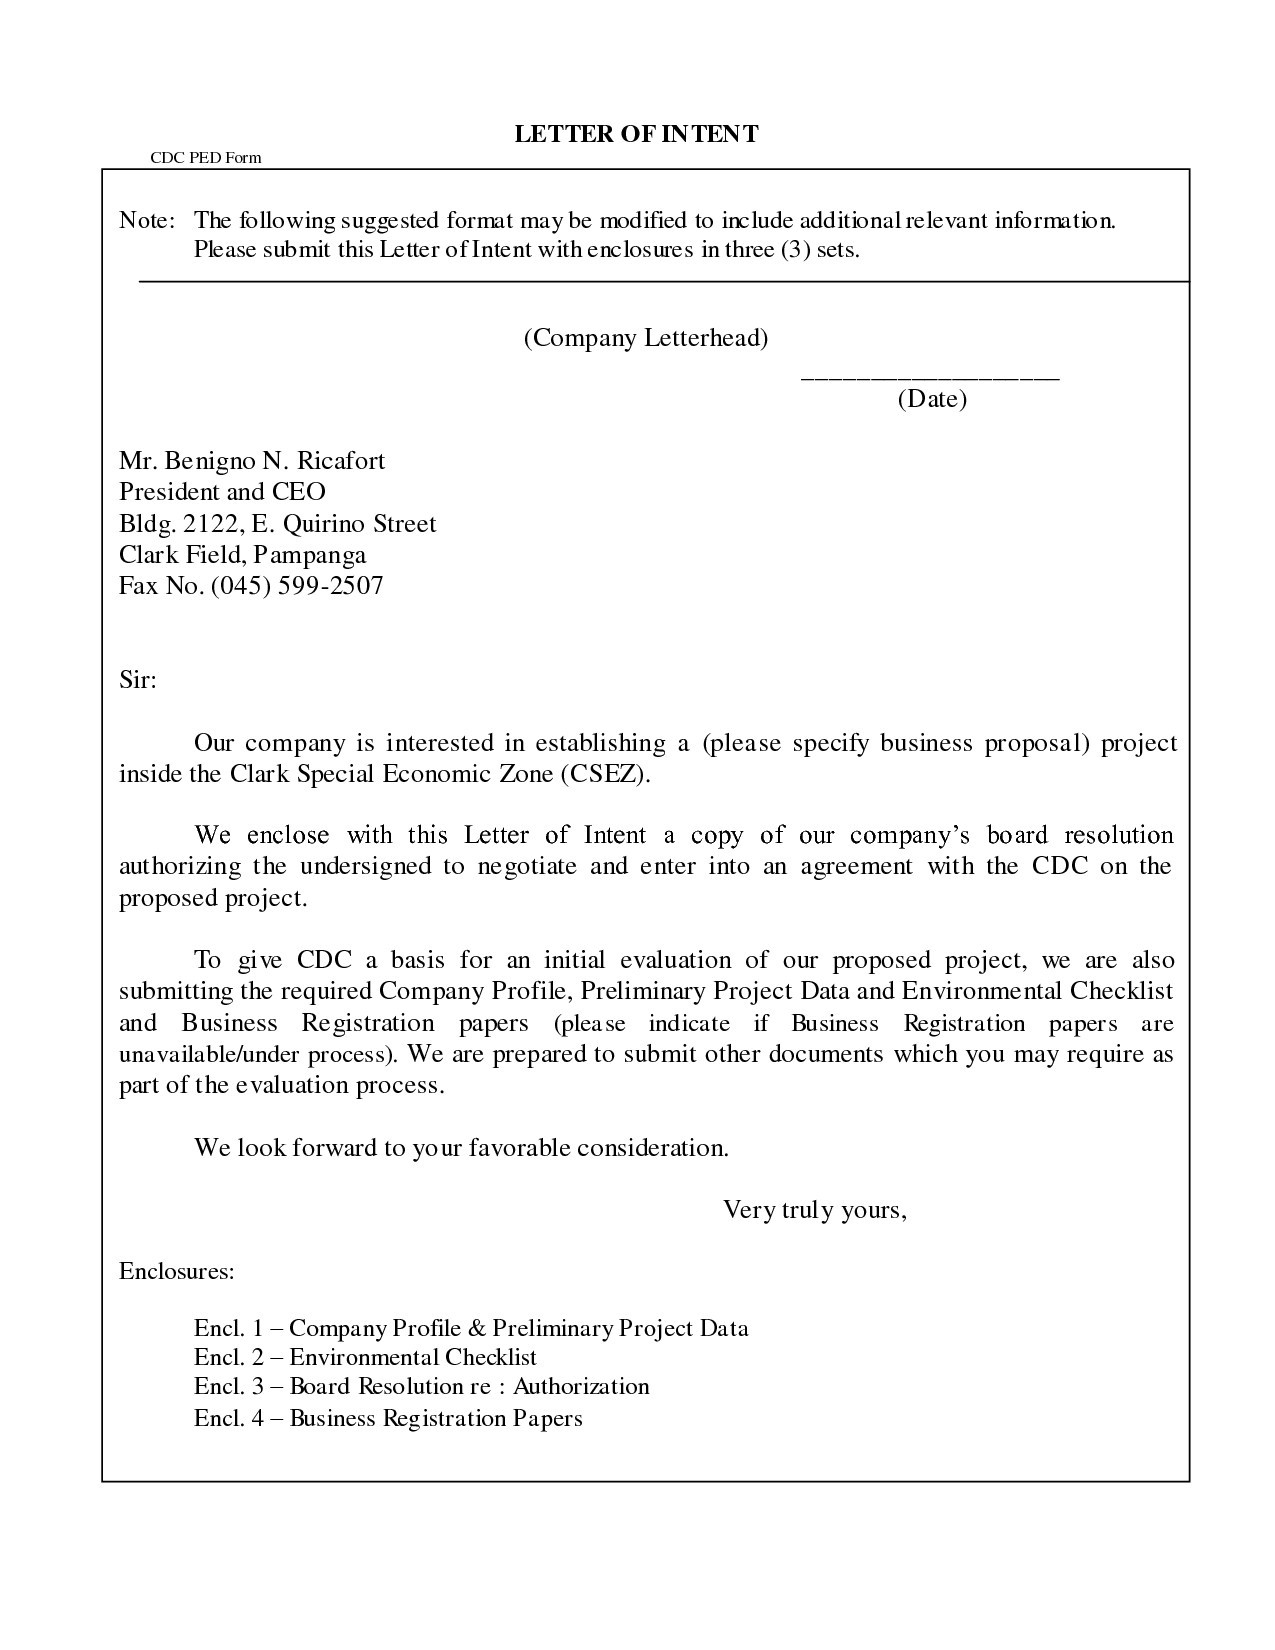 Cool Letter Enclosure On Business Letter Format Enclosure Notation inside Business Letter Format Enclosure 20098